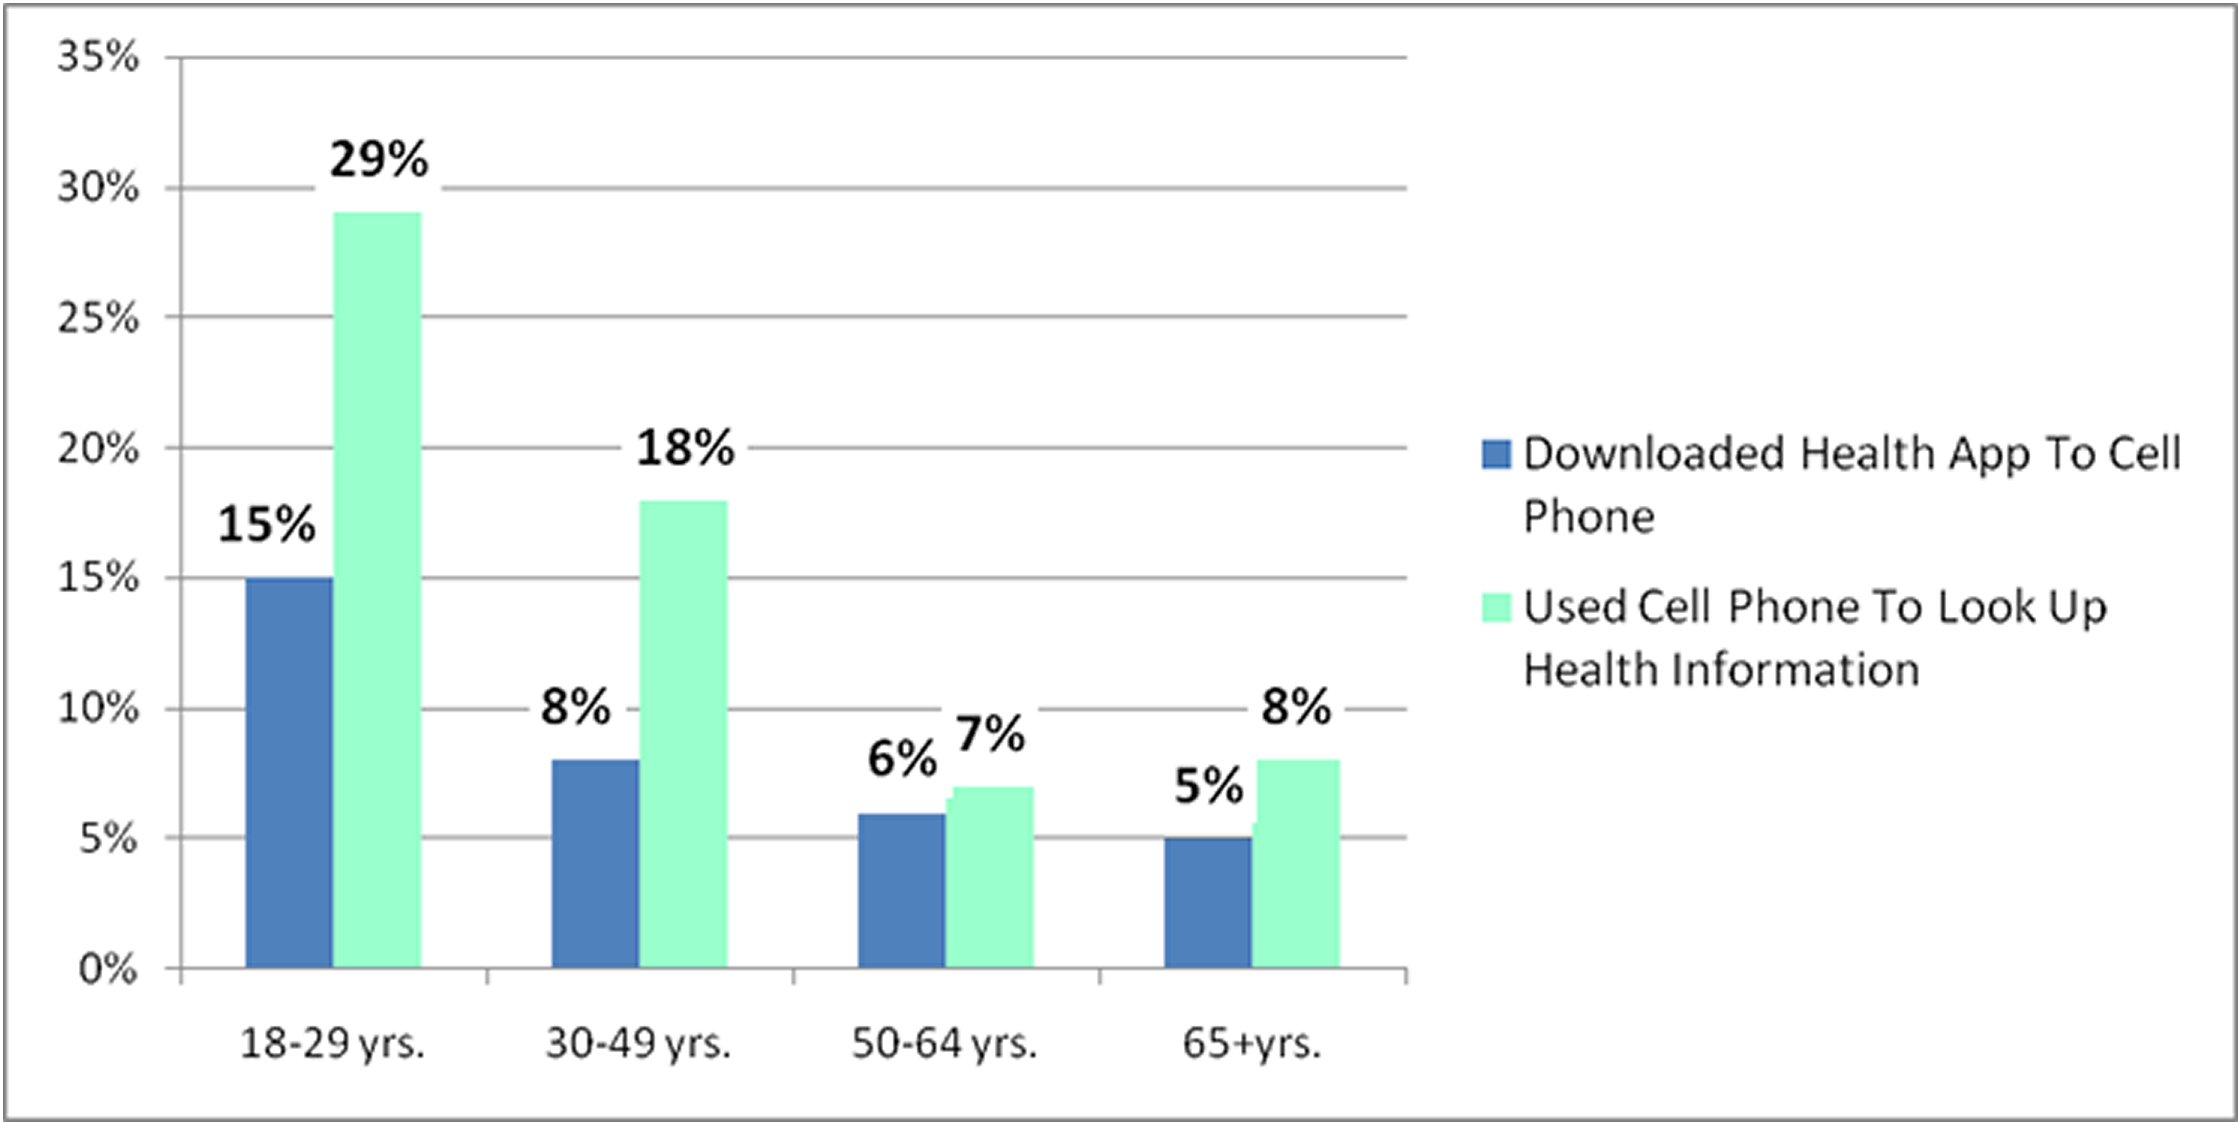 The use of mobile phone in